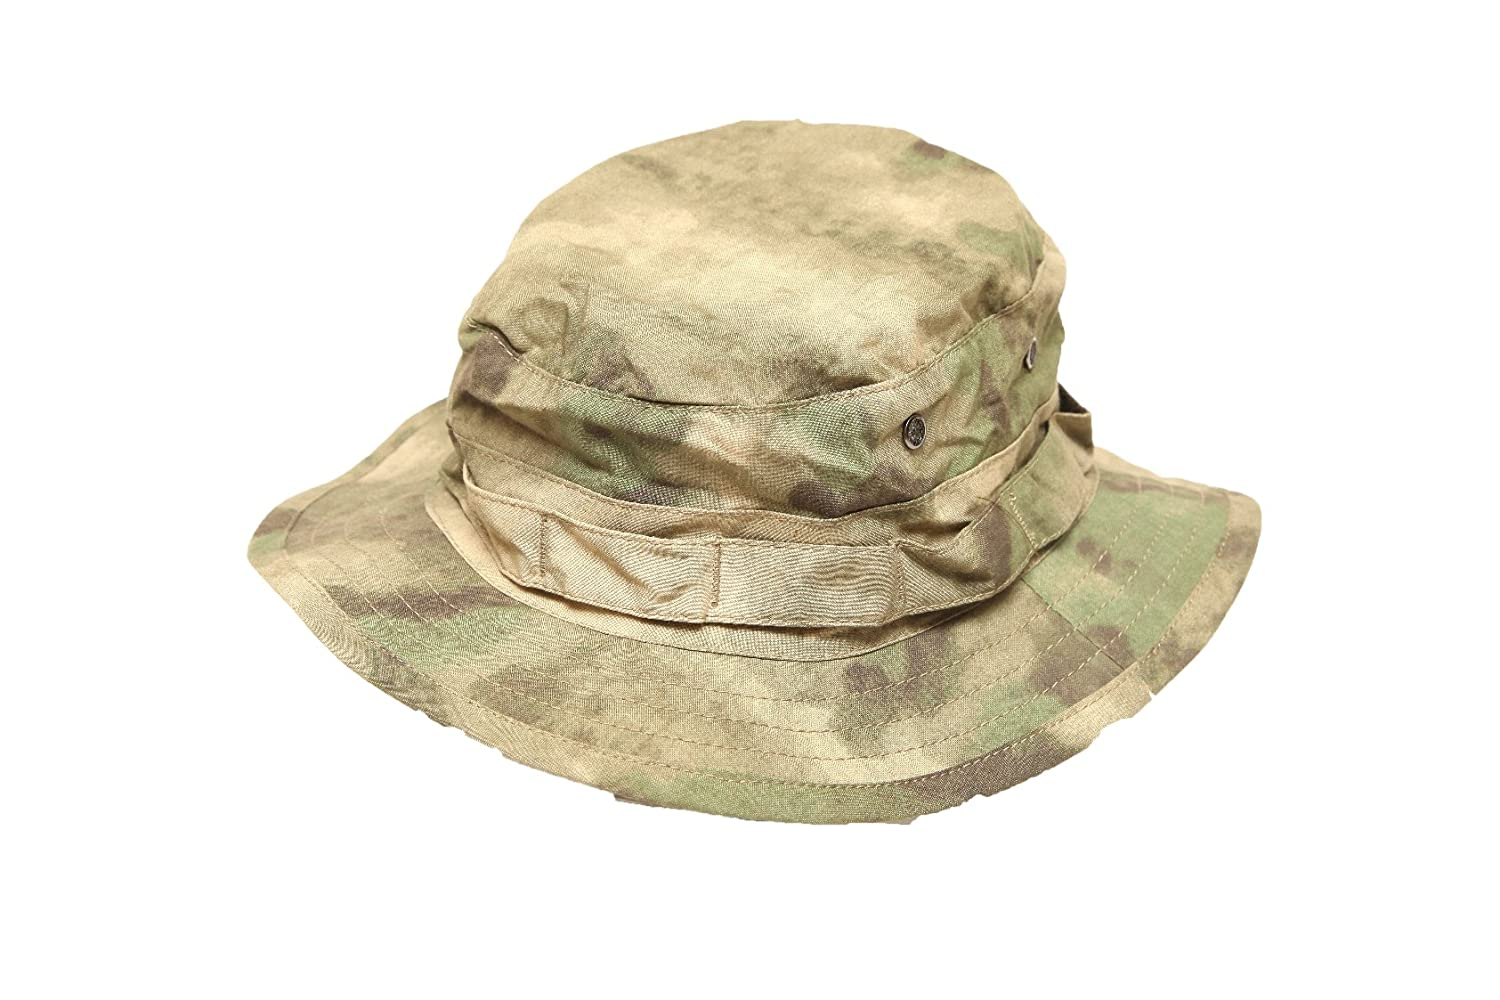 Russian Army Military Spetsnaz SPOSN SSO Boonie hat A-TACS FG